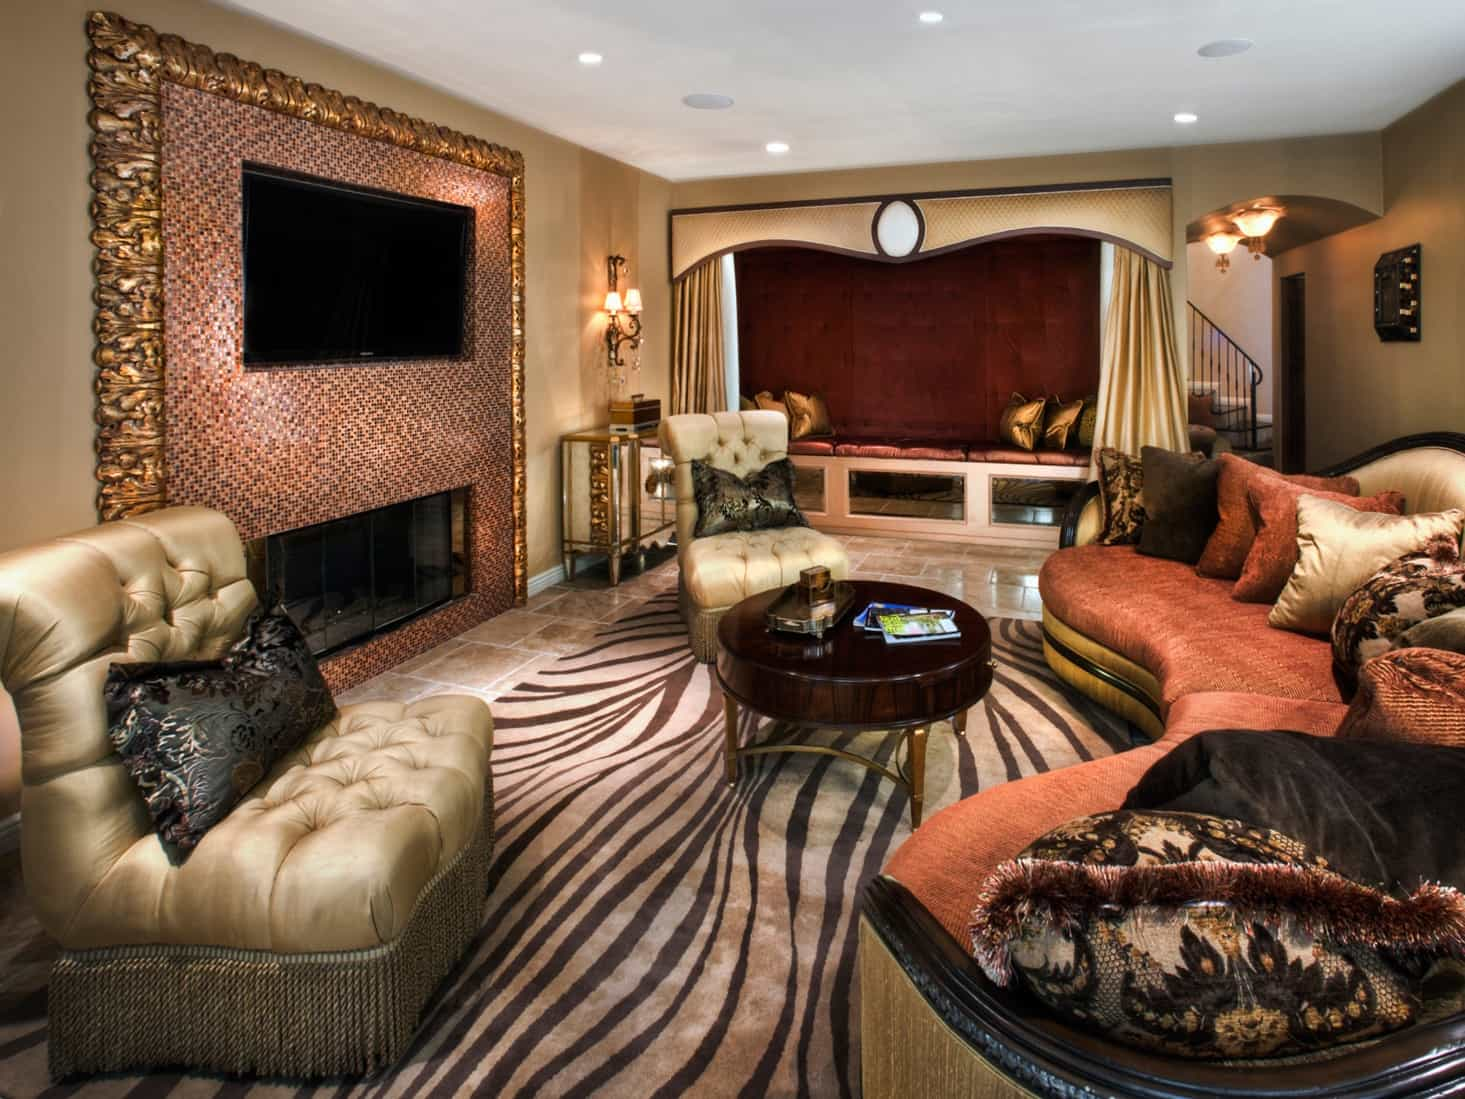 Featured Image of Glamour Eclectic Living Room With Zebra Print Rug